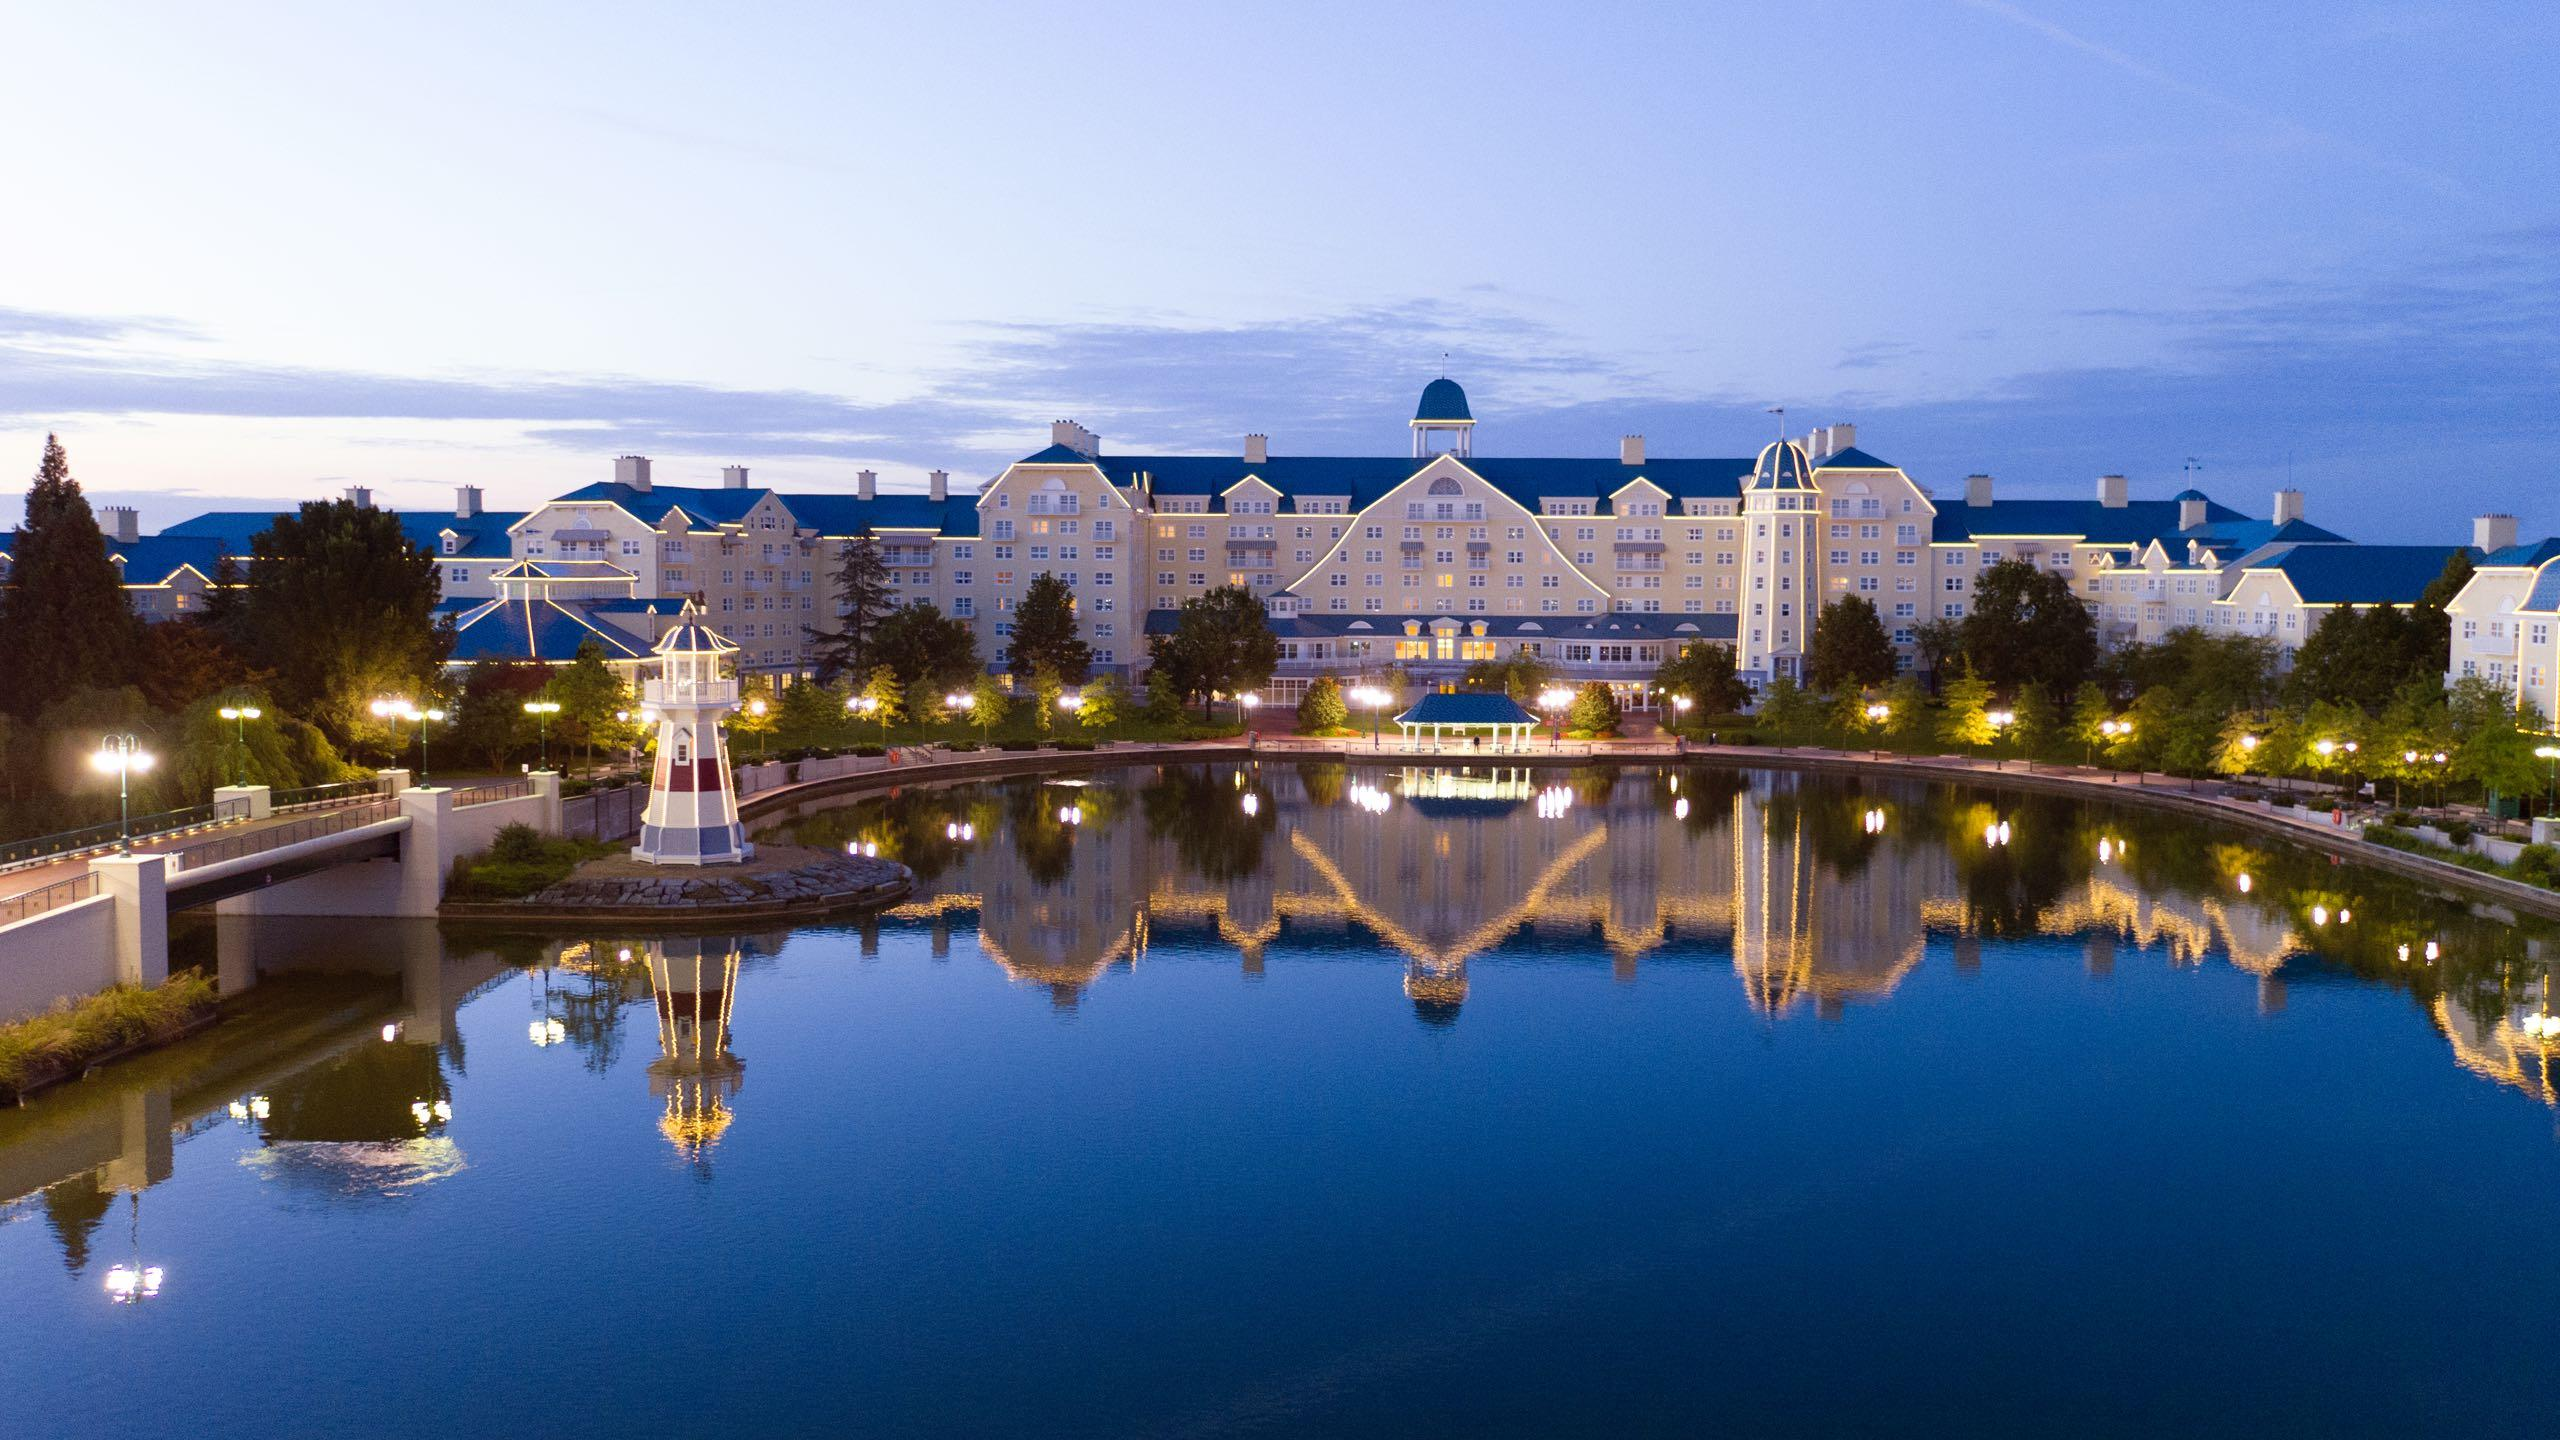 Disneyland Hotel in Disneyland Paris